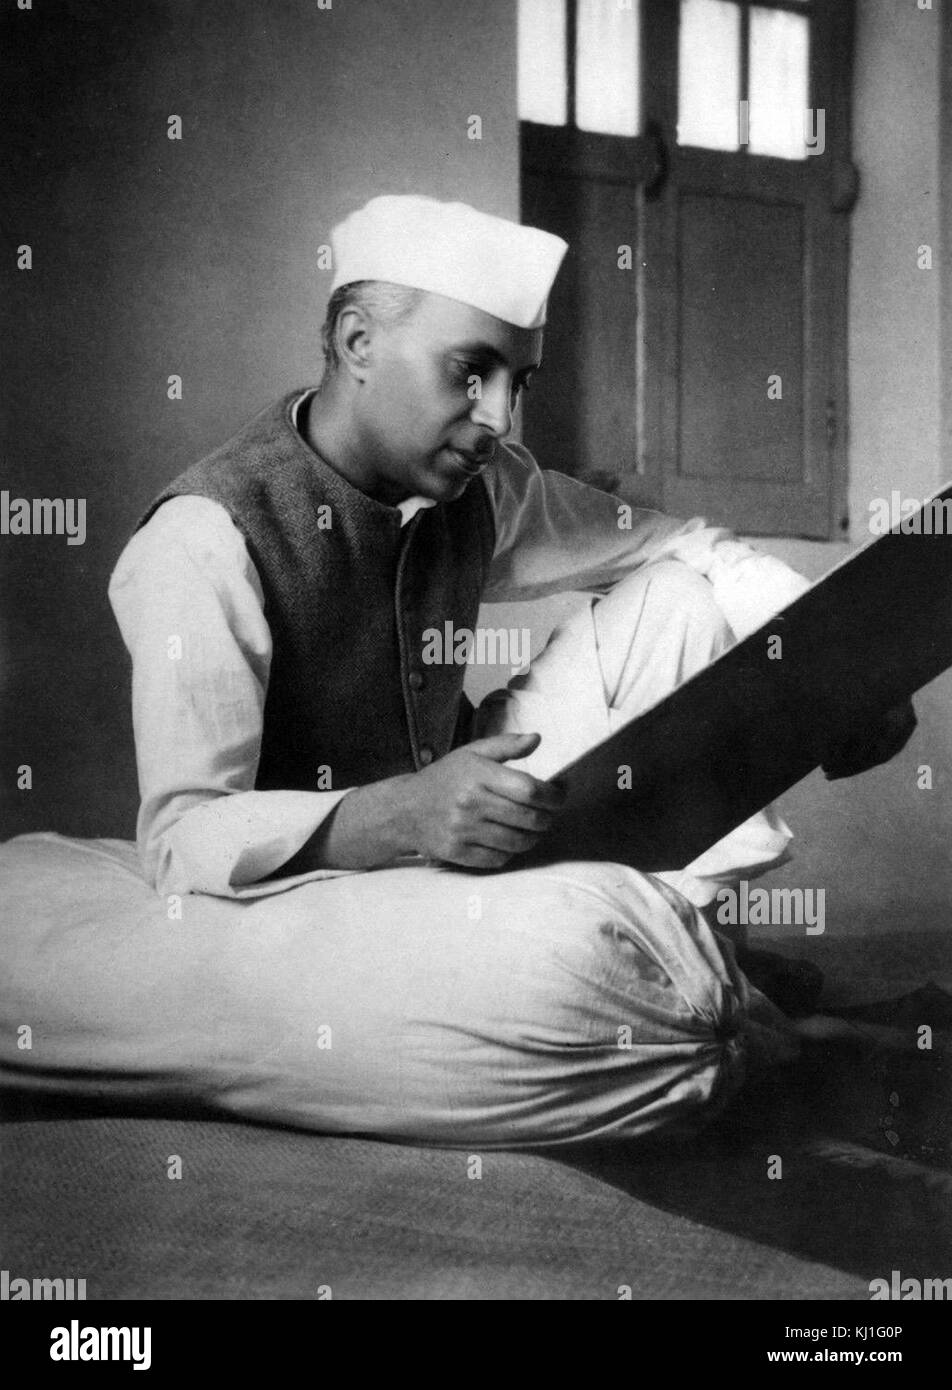 Jawaharlal Nehru (1889 -1964) was a leader of Indian National Congress during the Indian independence movement. - Stock Image